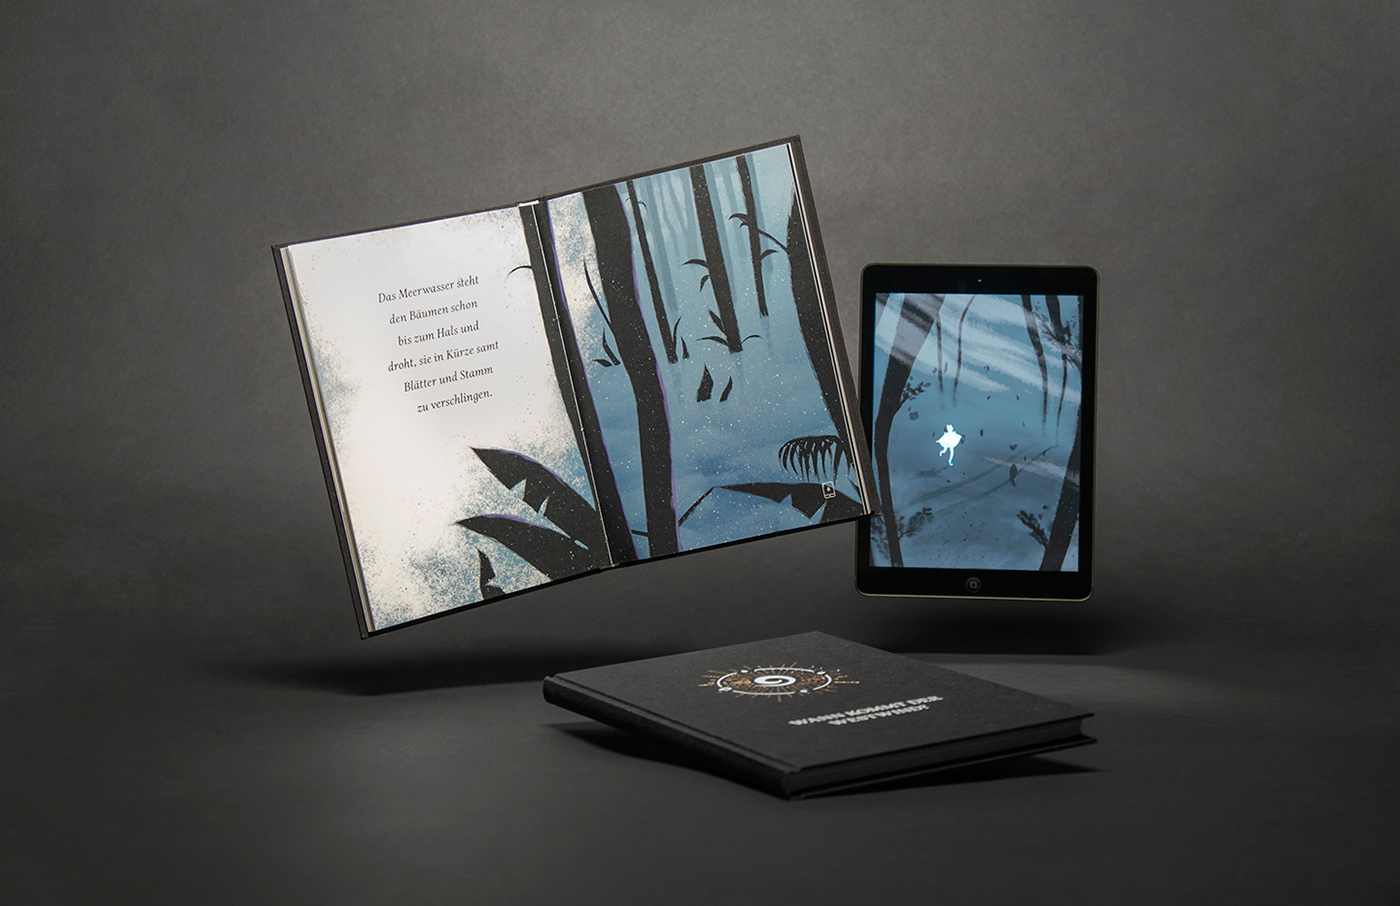 editorial tablet storytelling   innovation final project thesis interactive book book and tablet interactive storytelling master's thesis book with tablet book flat illustration